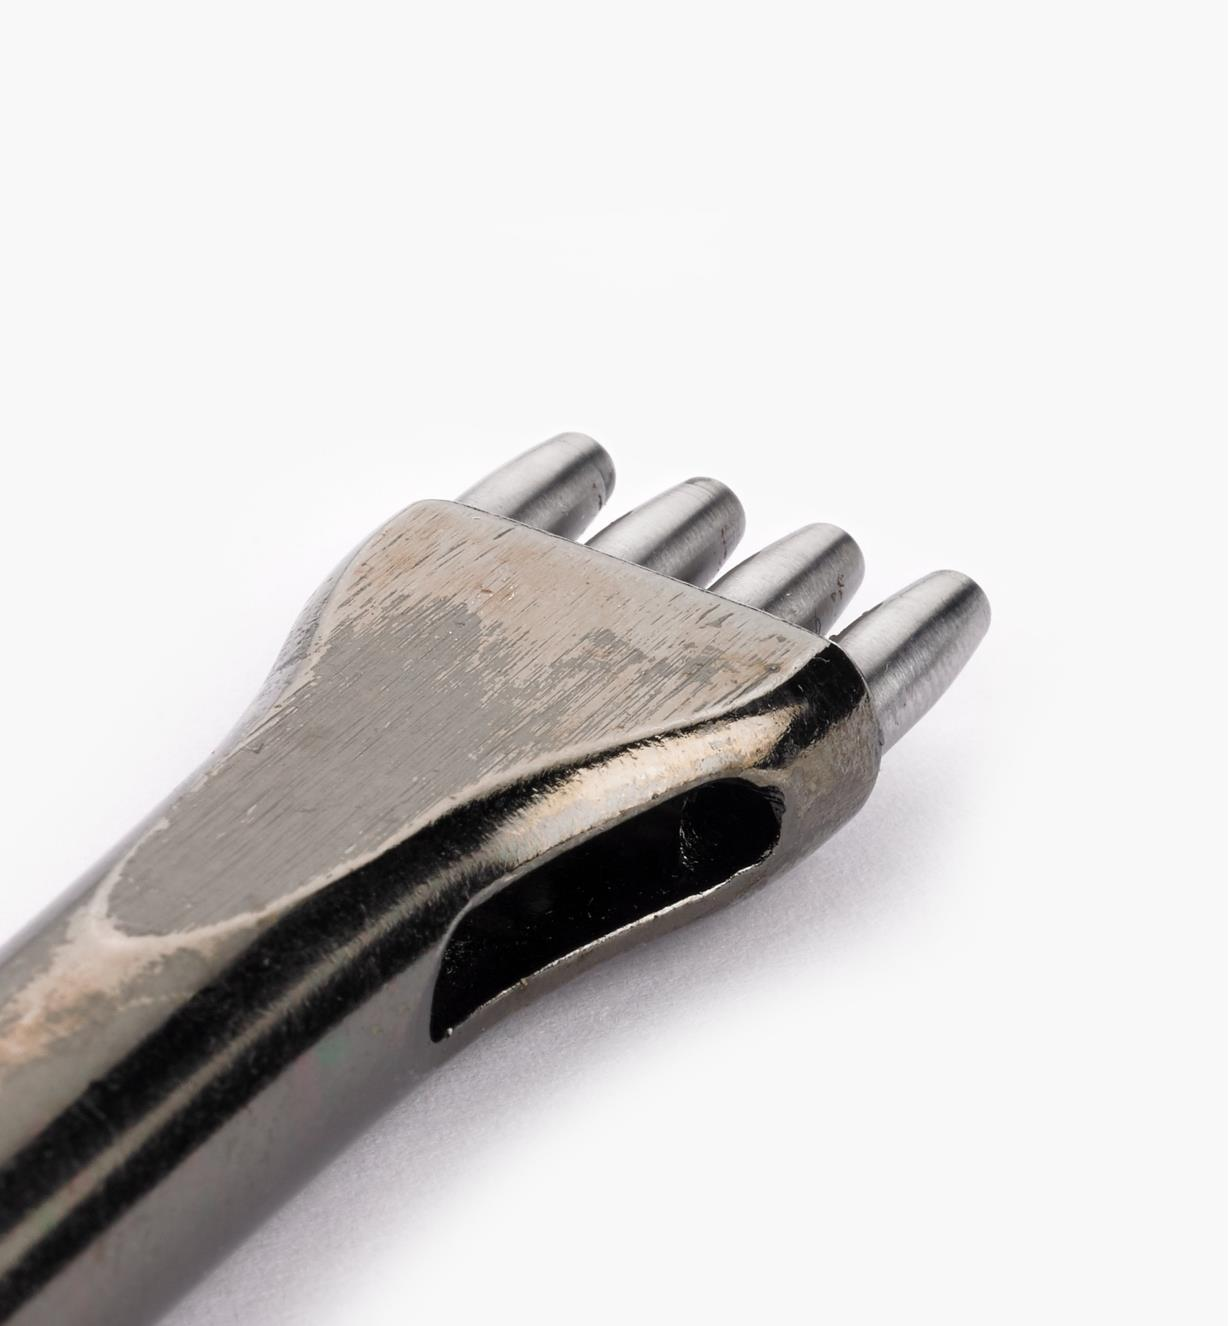 Close-up of Multi-Hole Punch tip